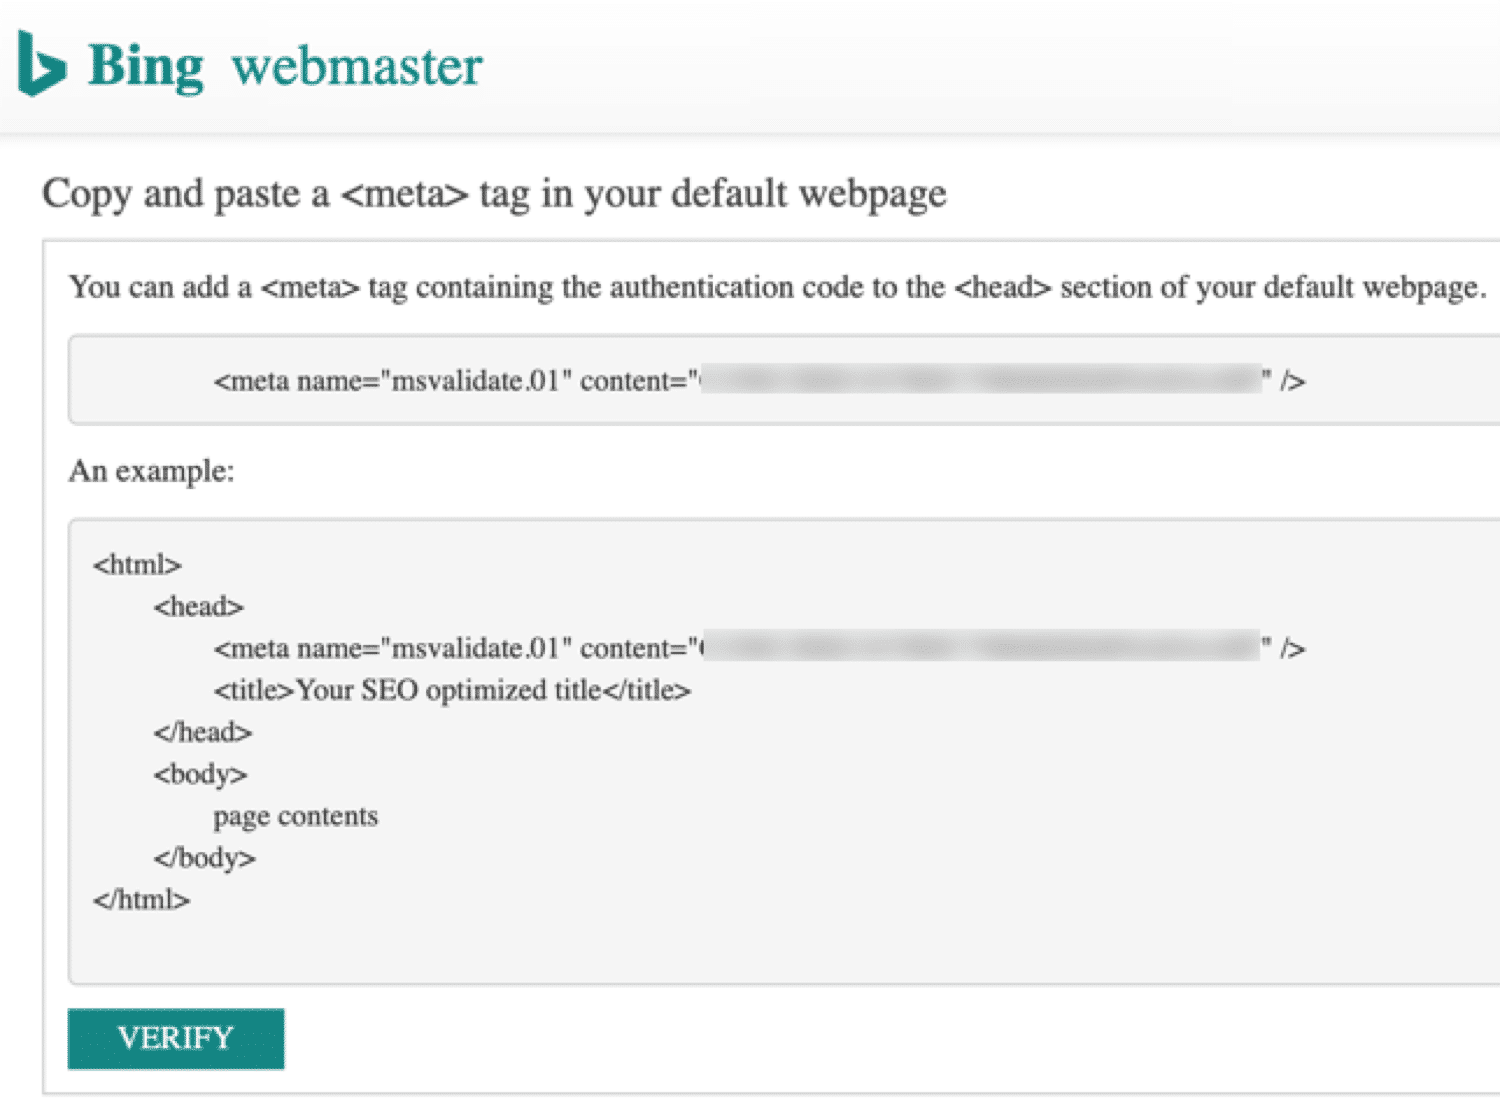 Meta tag to verify Bing Webmaster Tools